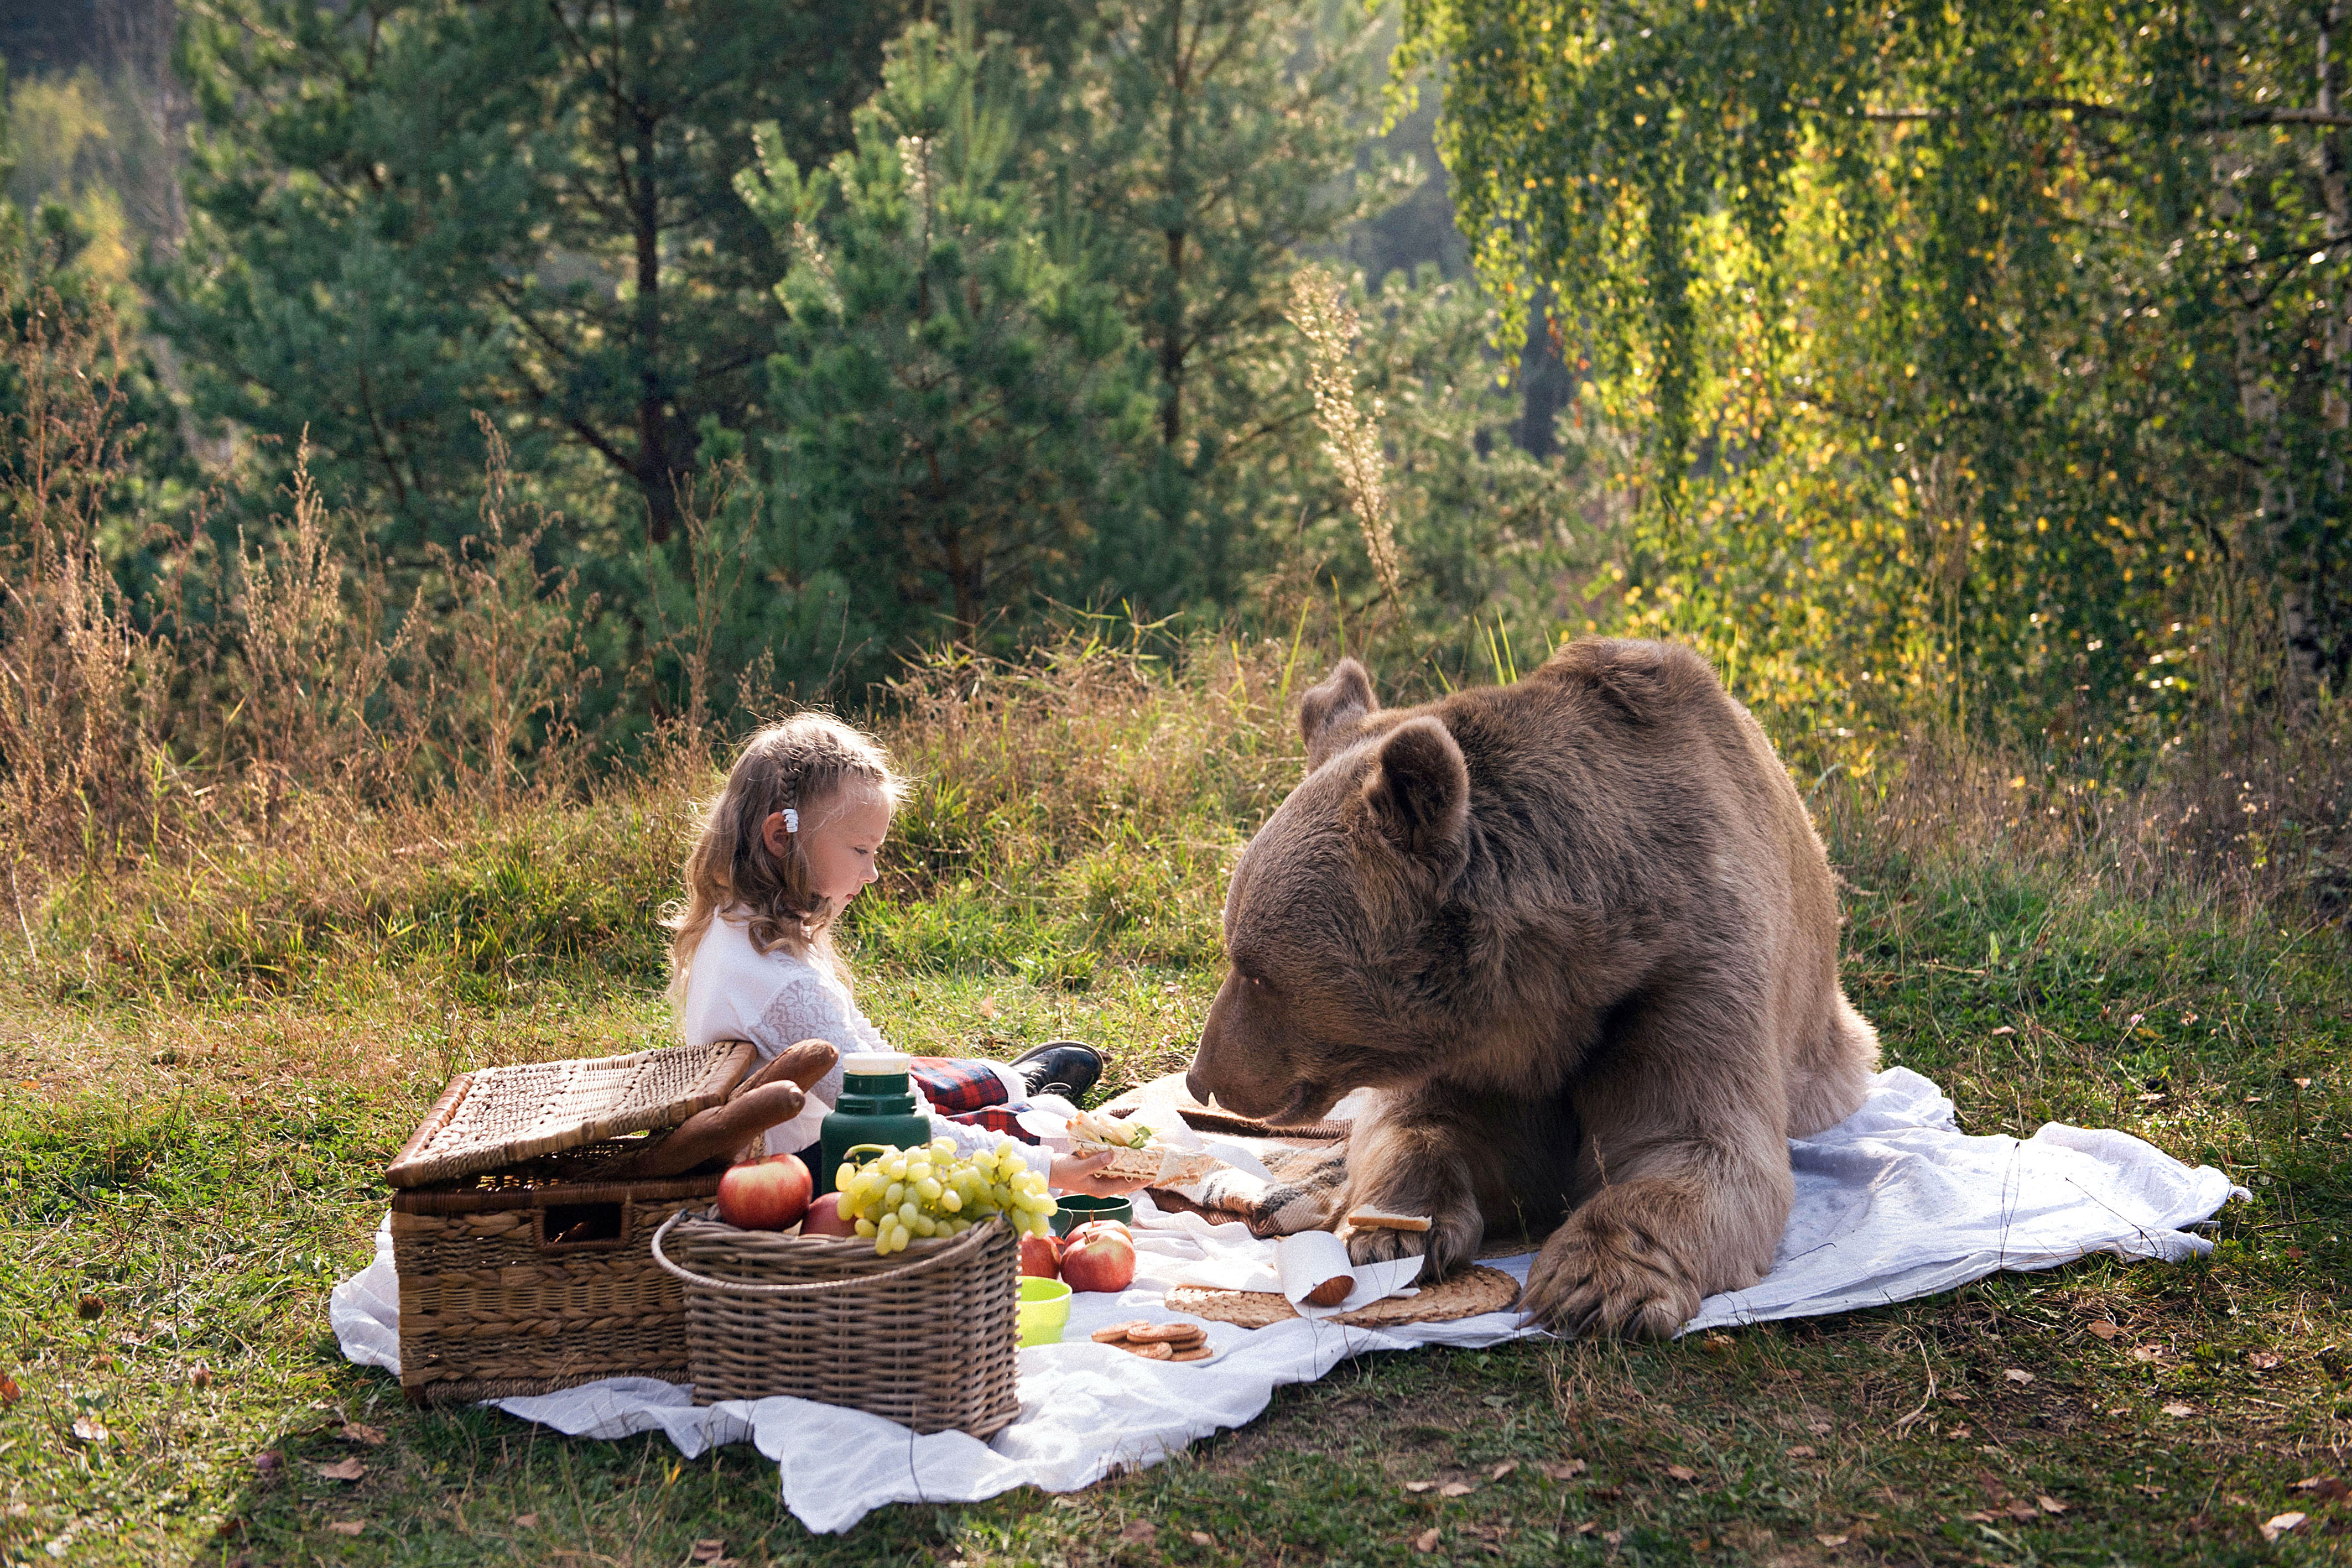 The grizzly bear is not interested in meat since it grew up as a vegetarian. Photo: Caters News